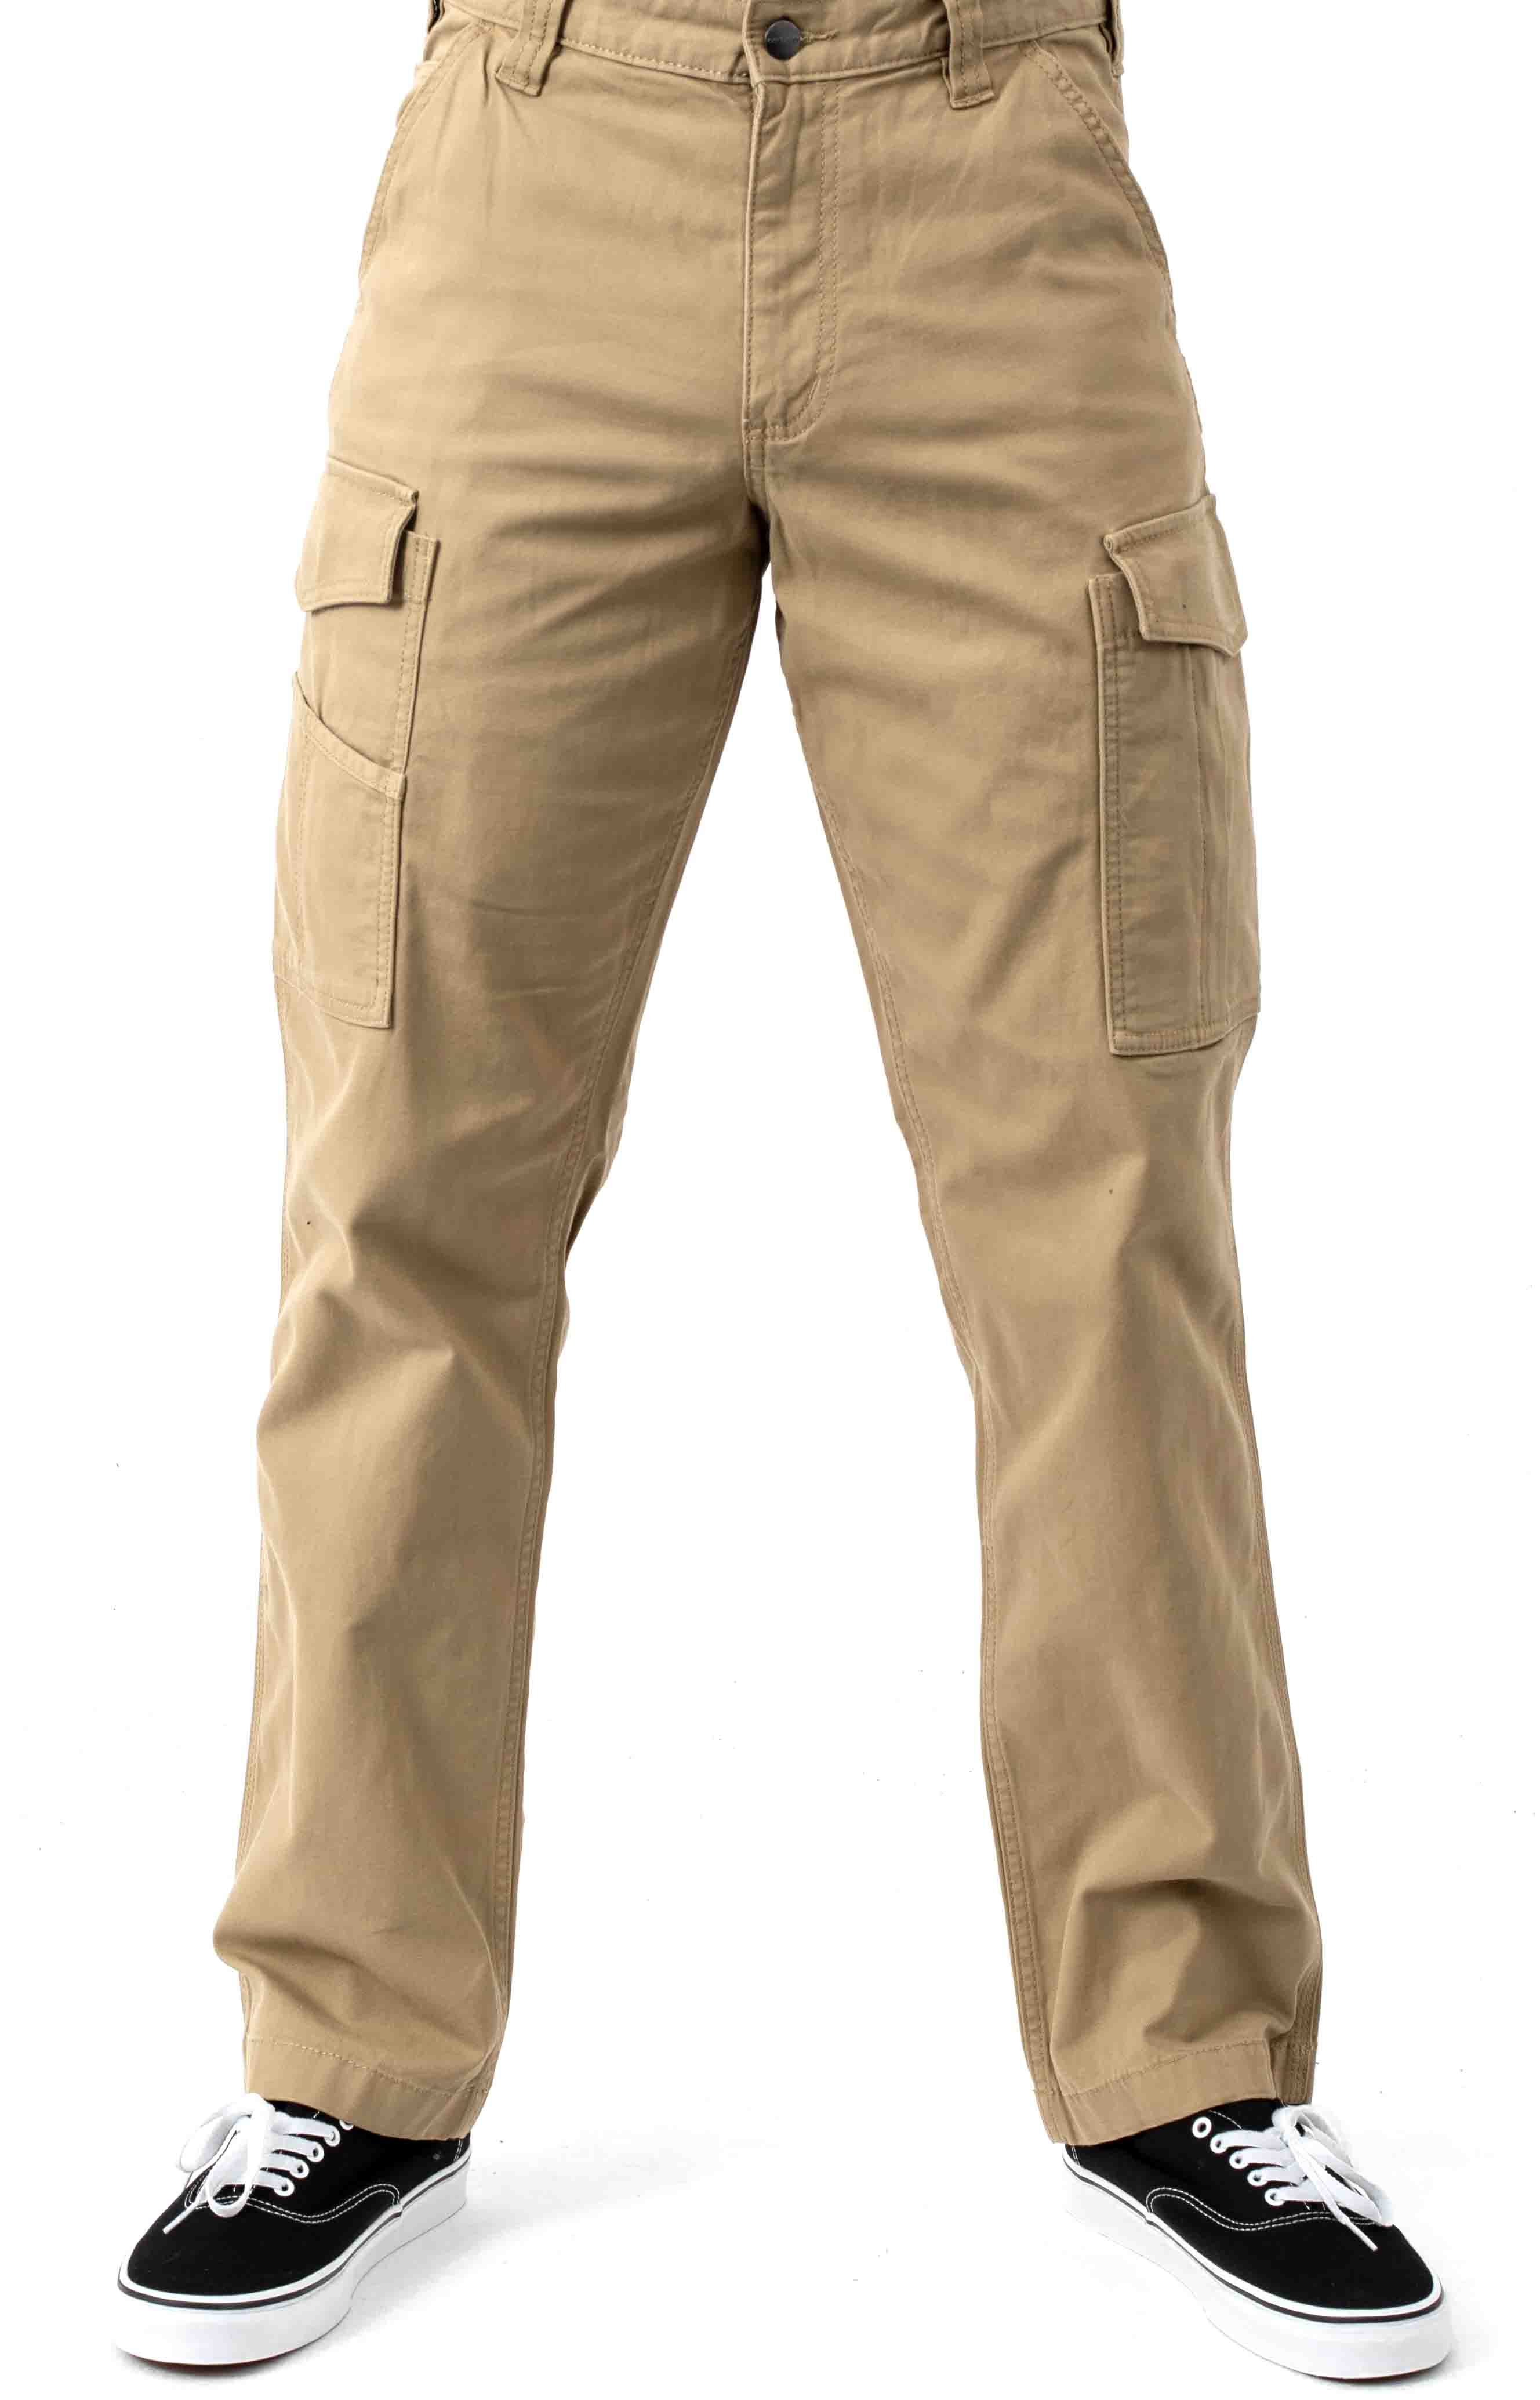 (103574) Rugged Flex Rigby Cargo Pant - Dark Khaki 2